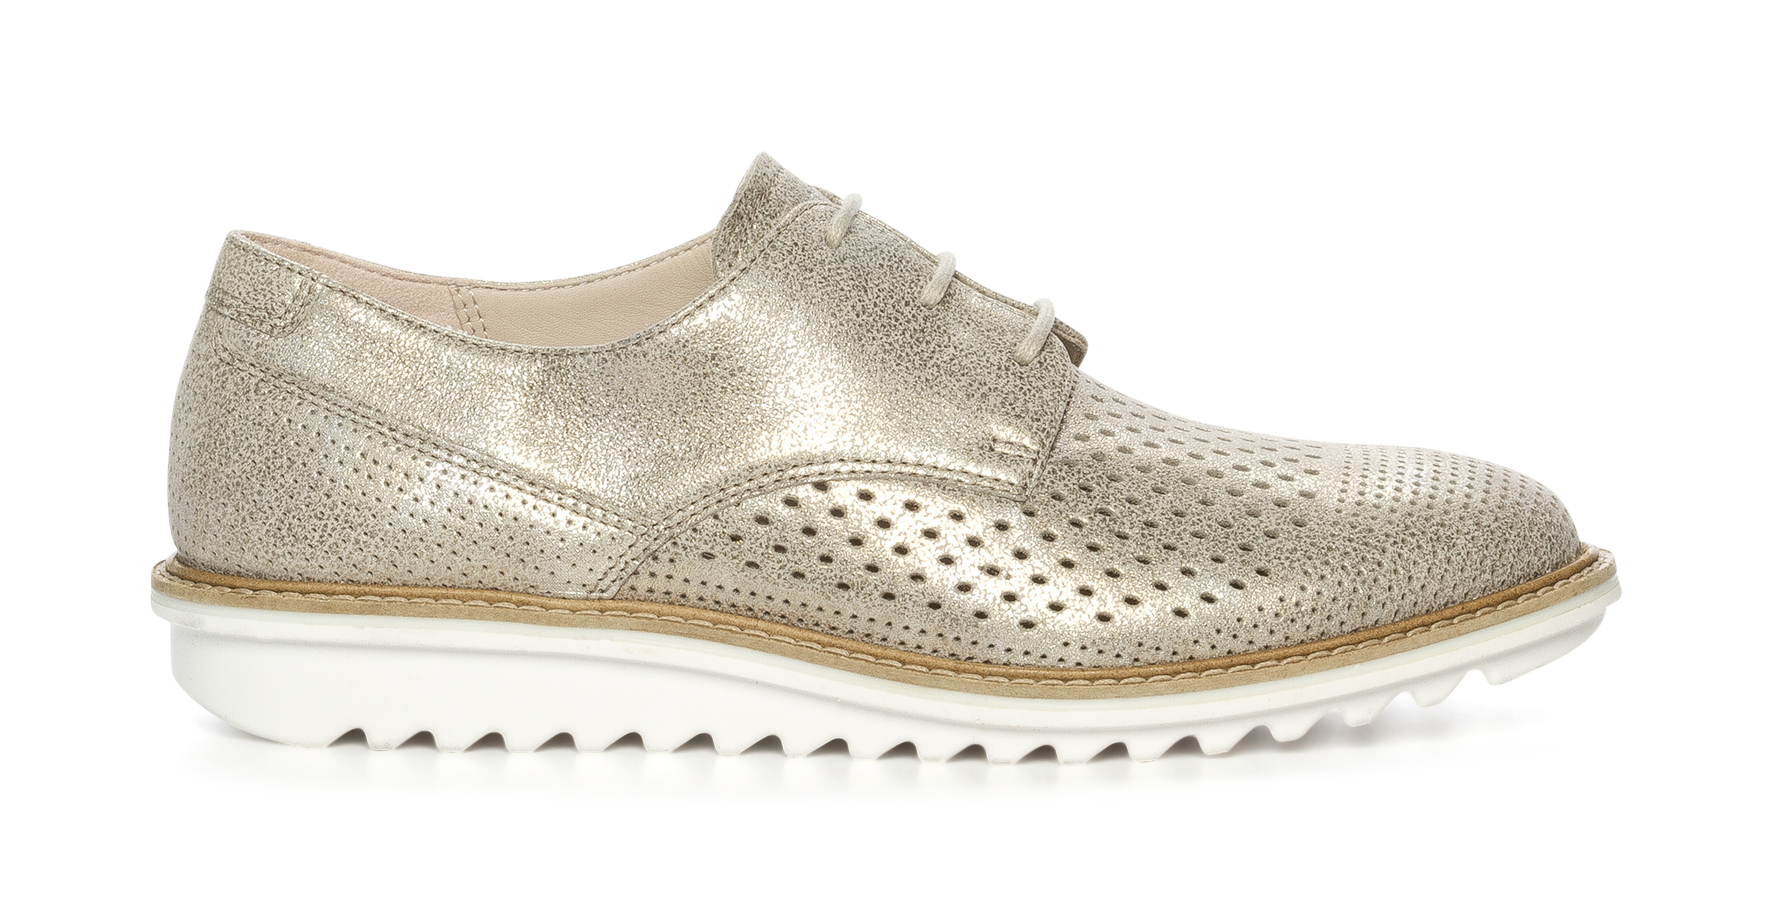 ecco oxford, ECCO Touch Sandal Ladies Formal Sandals